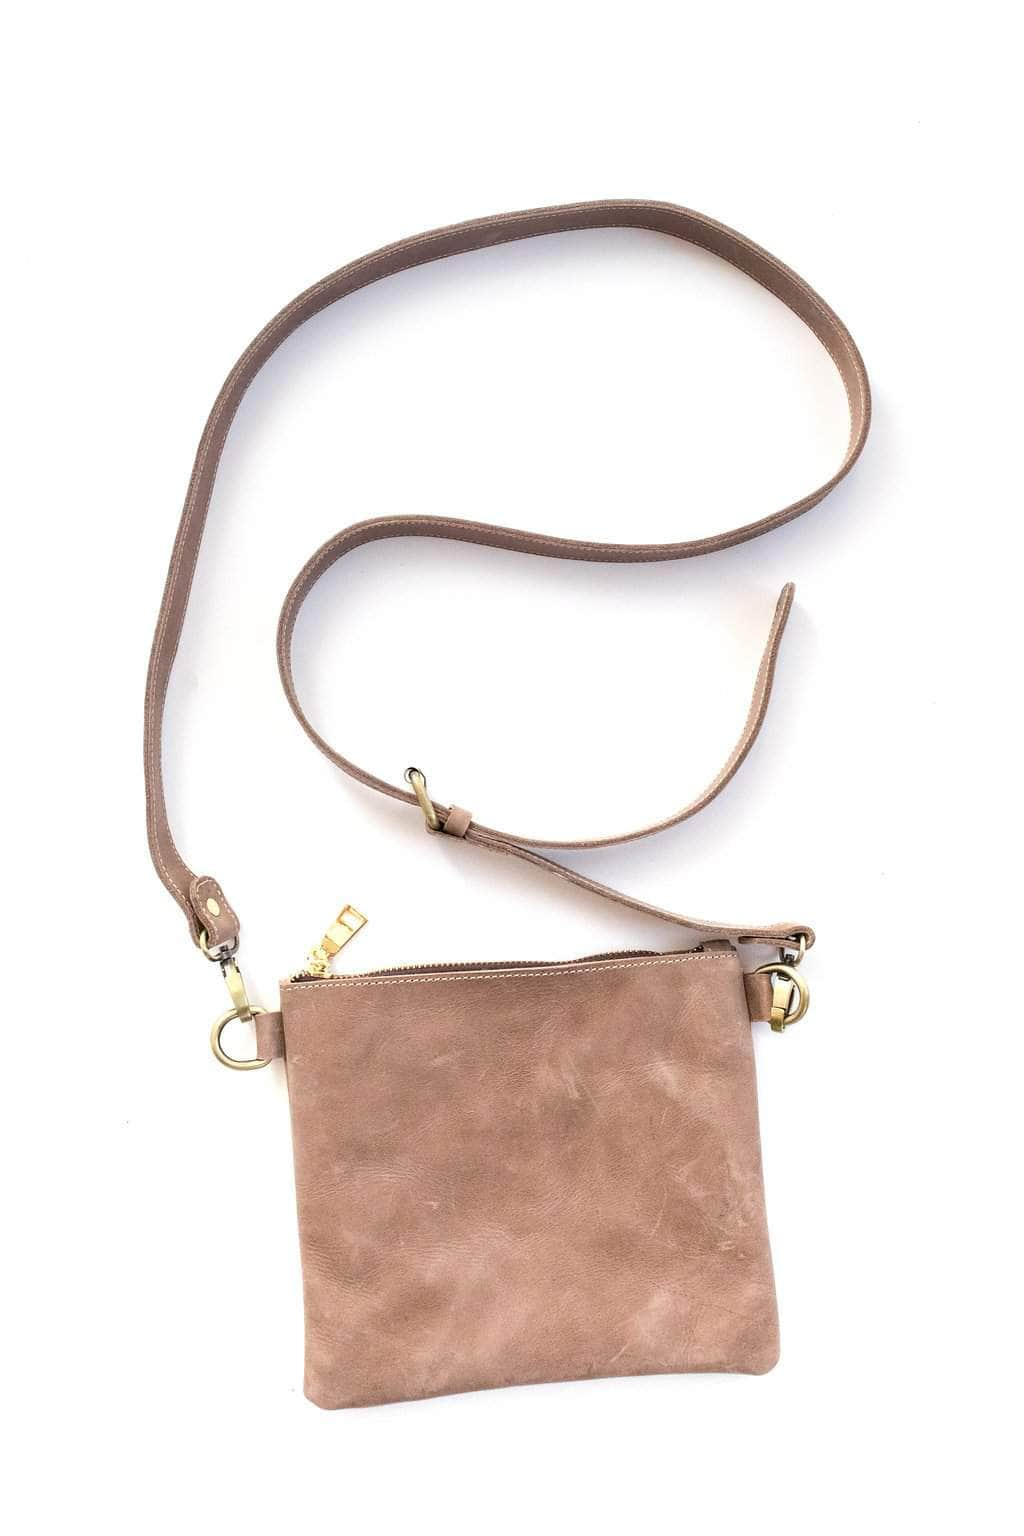 Amara Leather Crossbody - Light Grey - UnoEth